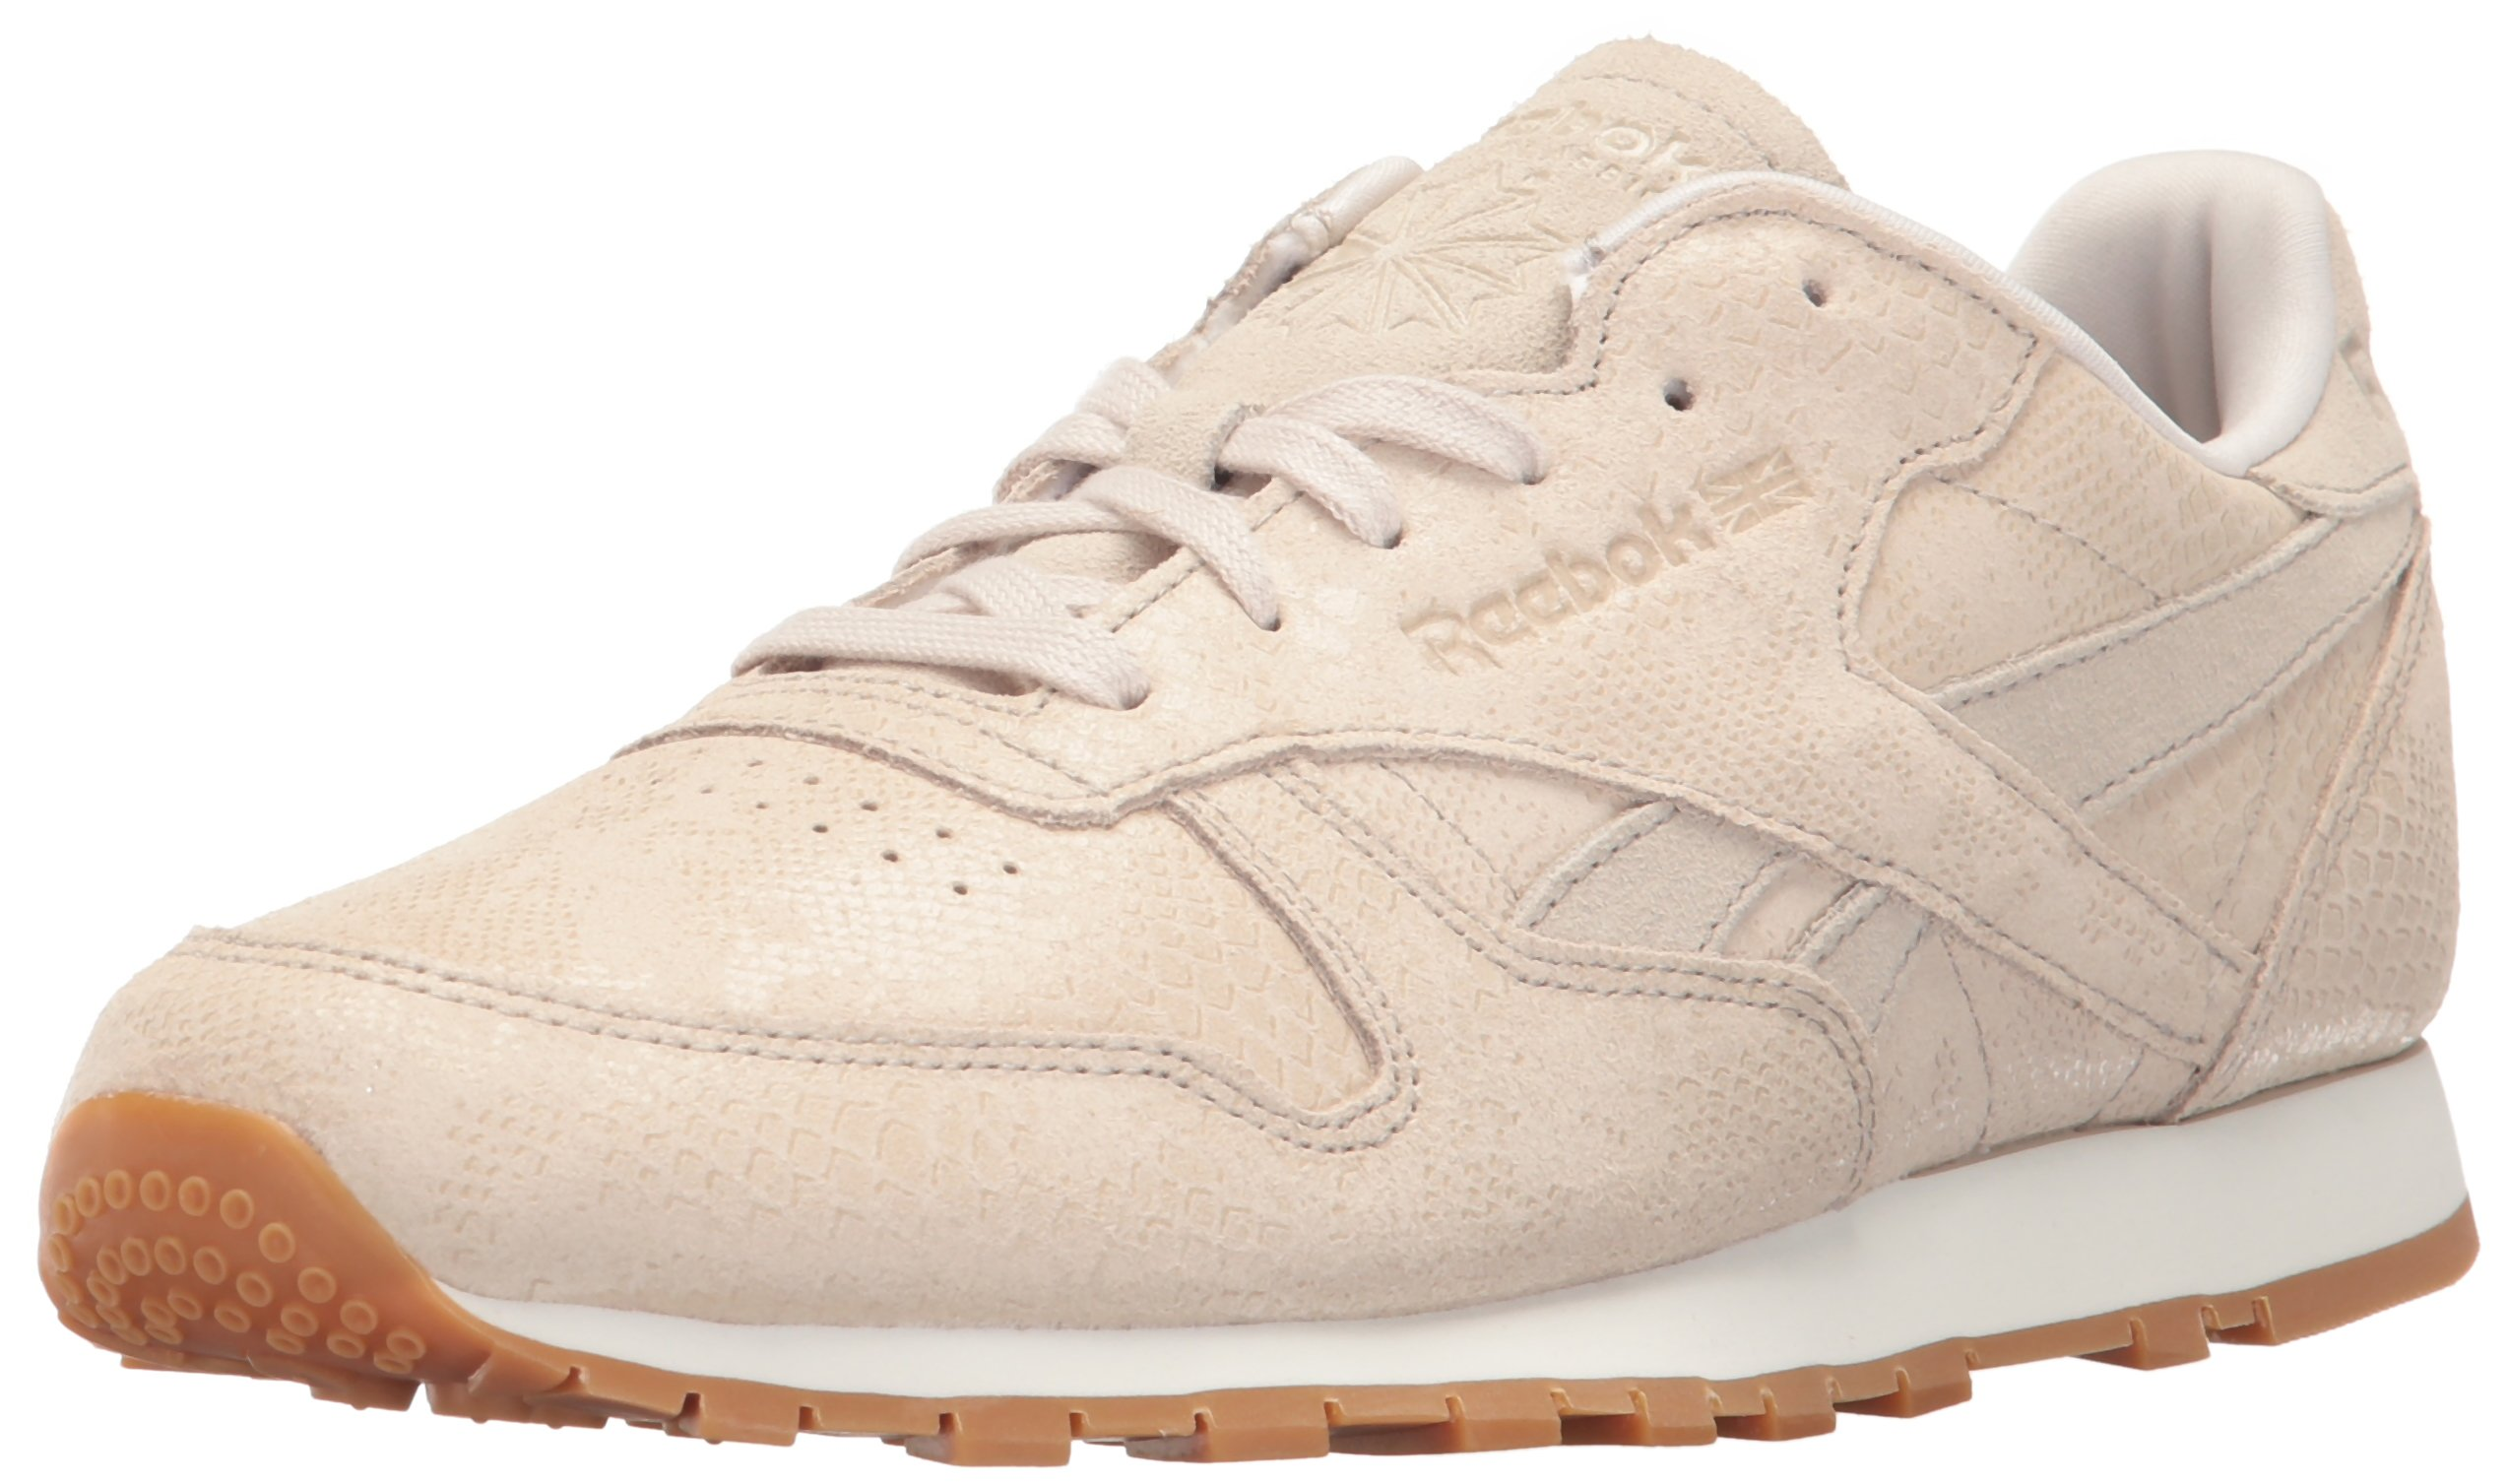 Reebok Women/'s Classic Leather Pink Exotic Print Fashion Sneakers